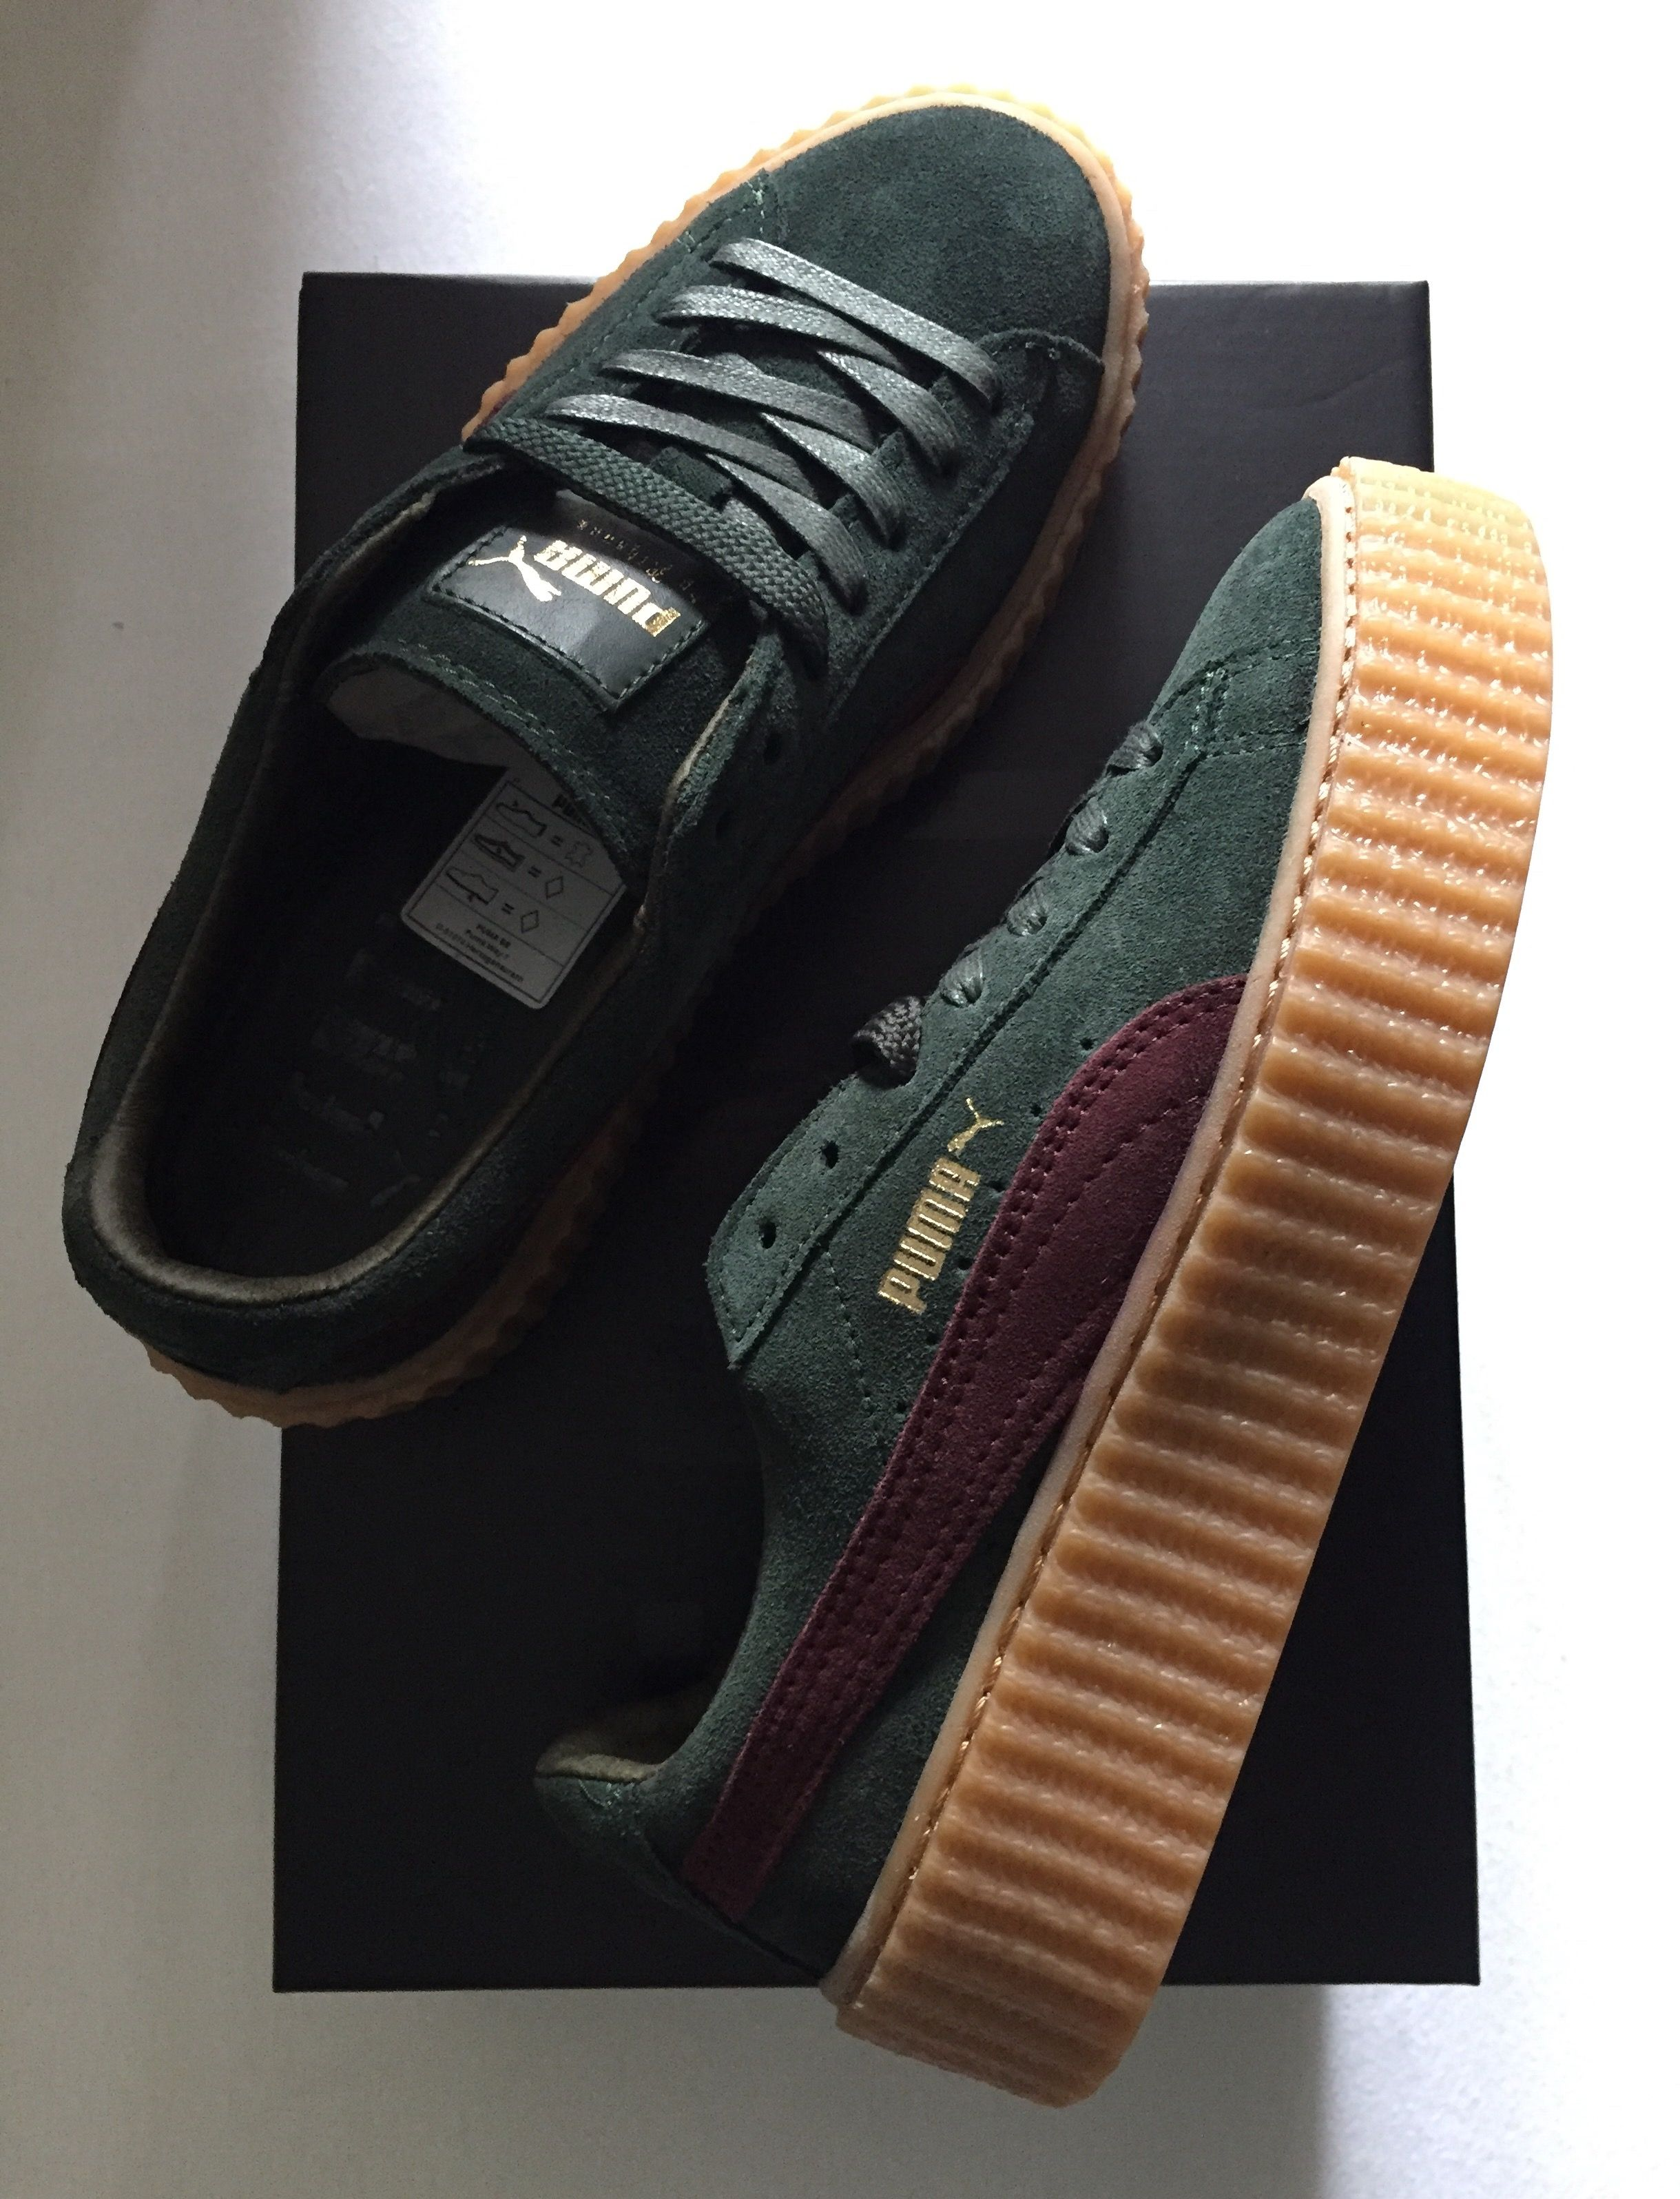 mnqmn x puma creeper by rihanna in gr sse eur 37 for sale. Black Bedroom Furniture Sets. Home Design Ideas